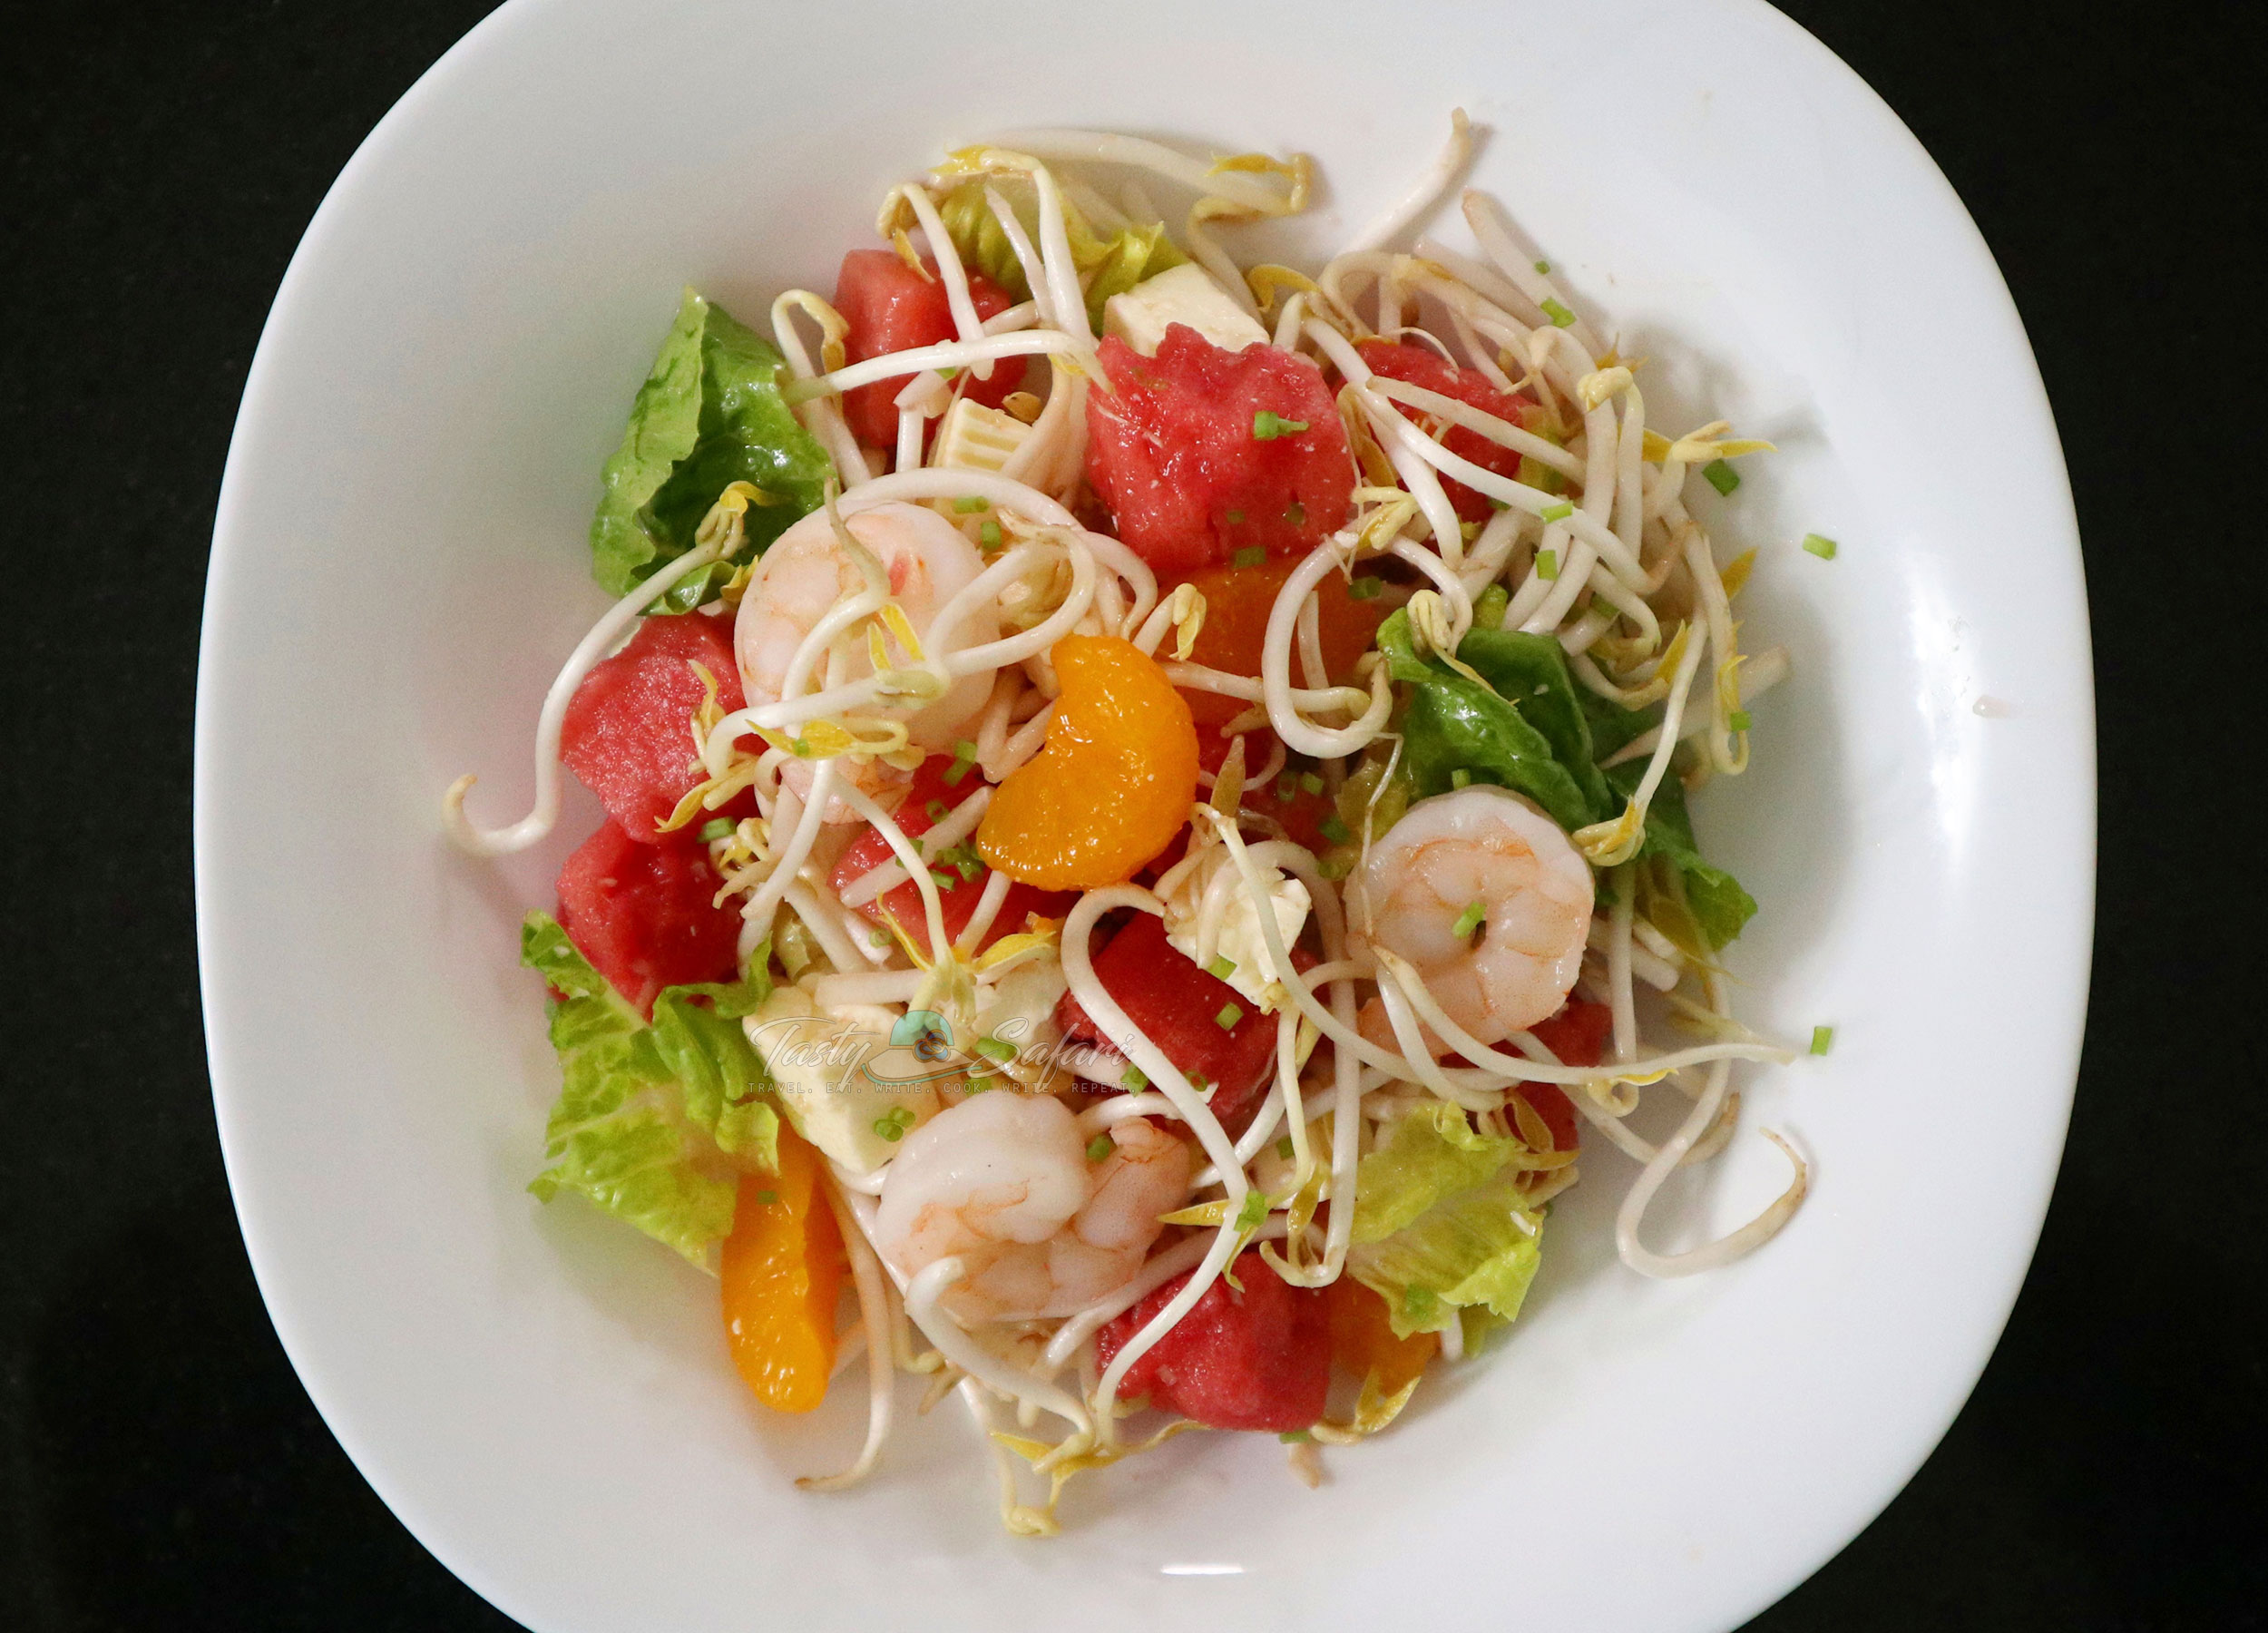 Shrimp and watermelon salad with Vietnamese mixed fish sauce